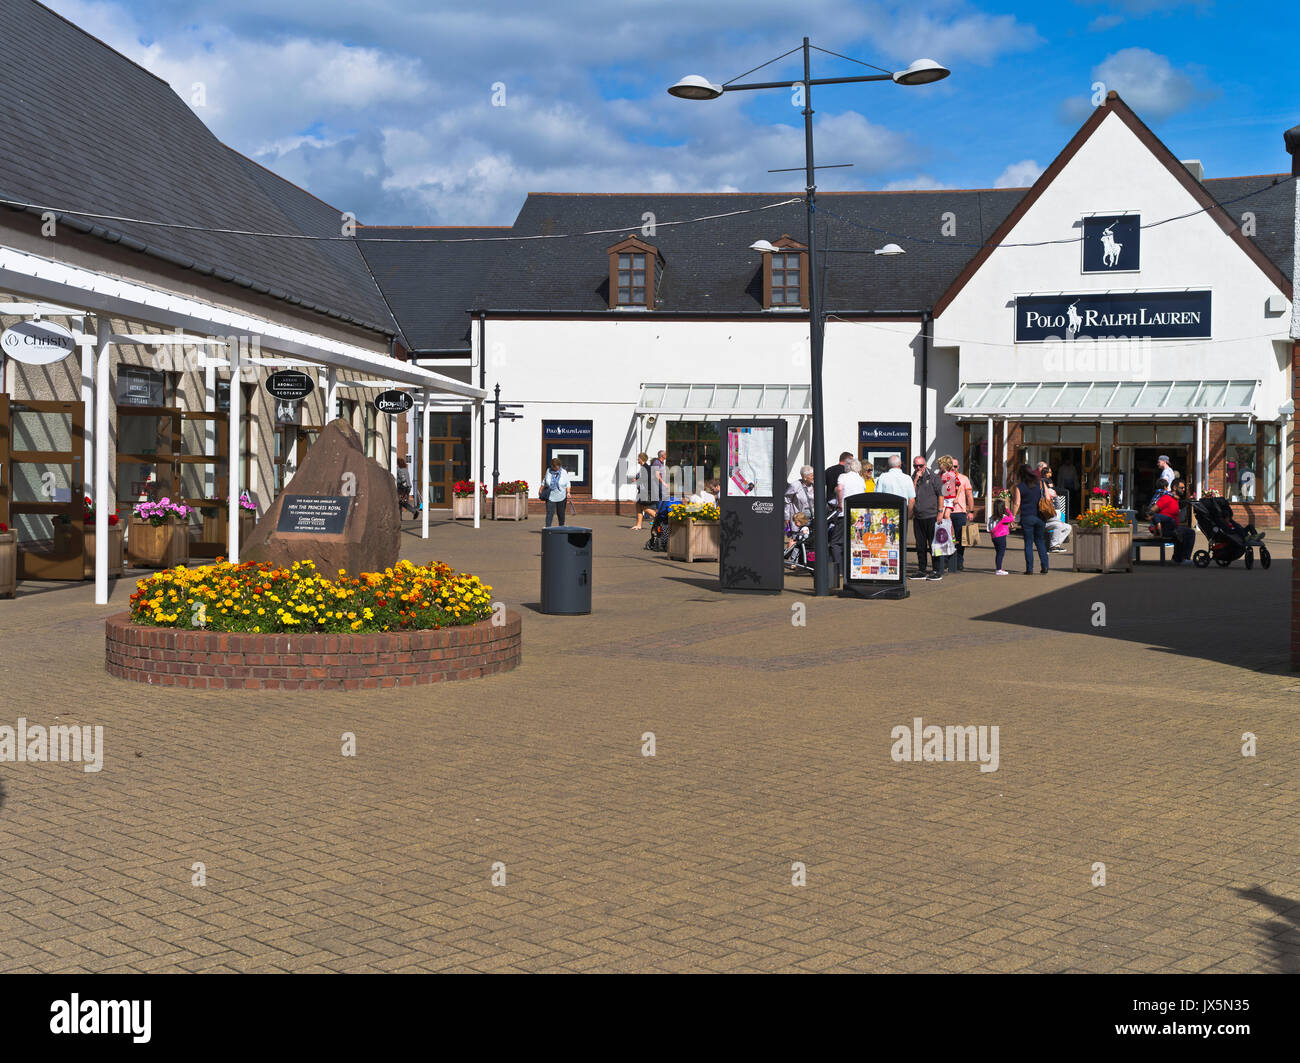 dh Gateway Outlet Village GRETNA GREEN DUMFRIES Polo Ralph Lauren Factory Store mall shops retail outlets shopping arcade - Stock Image